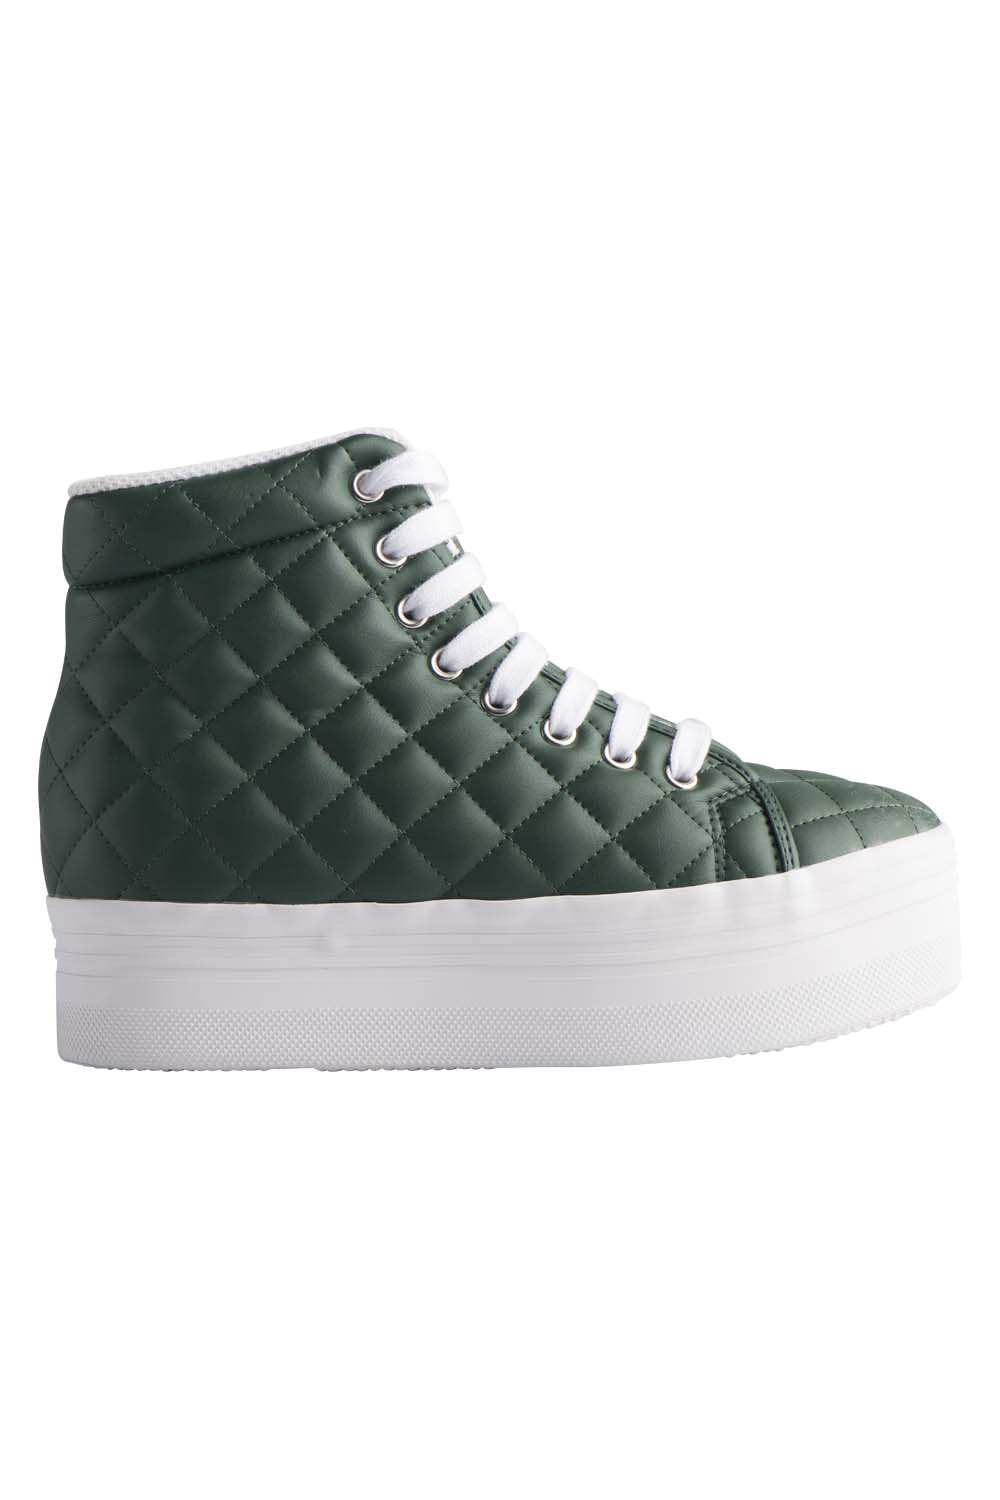 JEFFREY CAMPBELL SNEAKERS - HOMG DK GREEN QUILTED.jpg